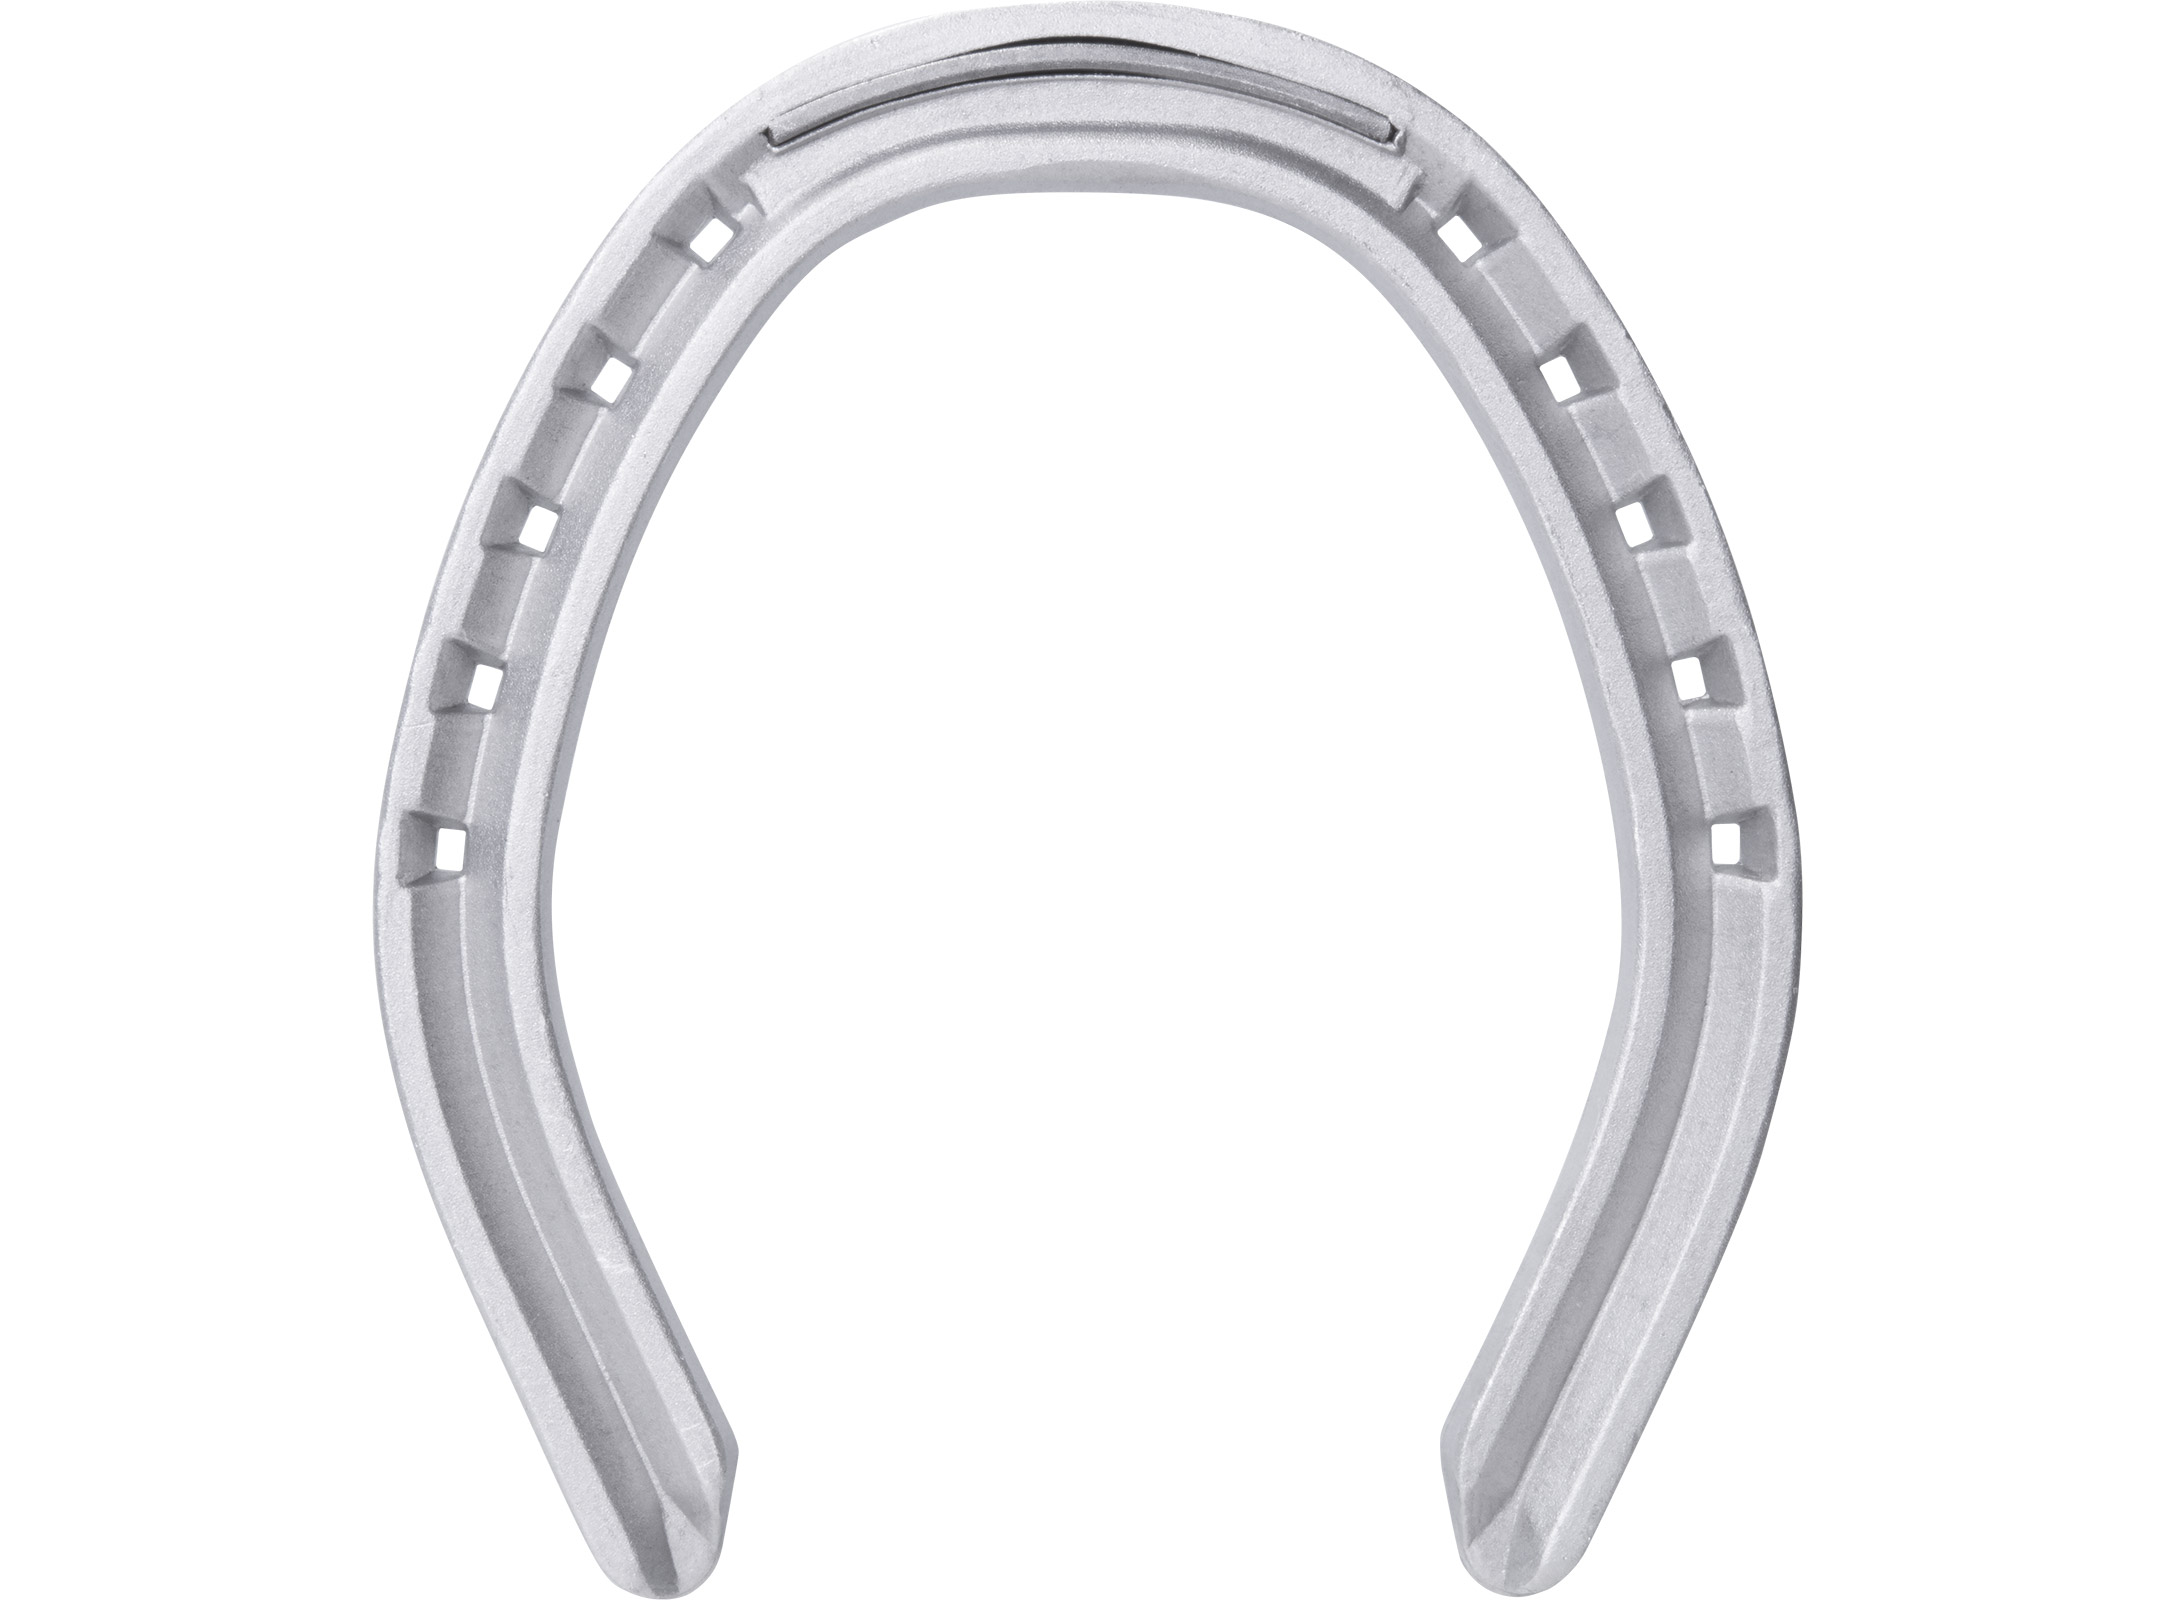 St. Croix Fullered Aluminium horseshoe, bottom side view